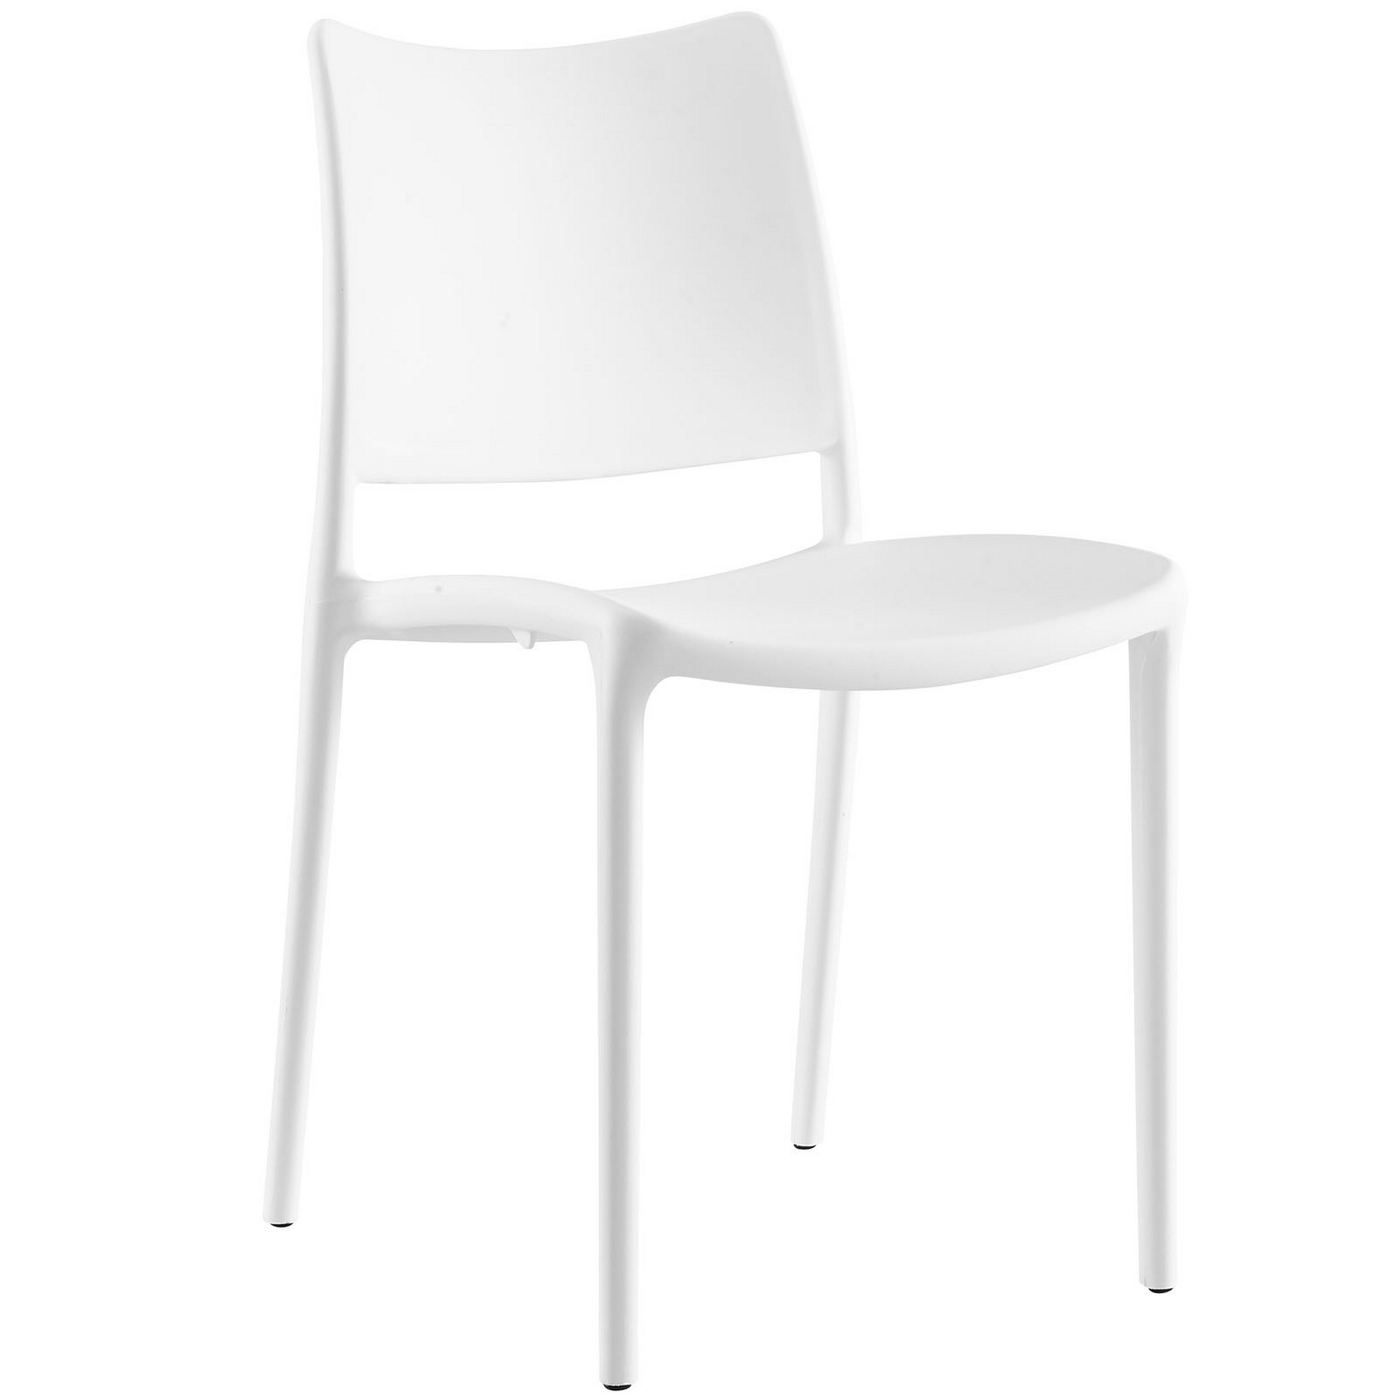 White Stackable Chairs Hipster Contemporary Stackable Plastic Dining Side Chair